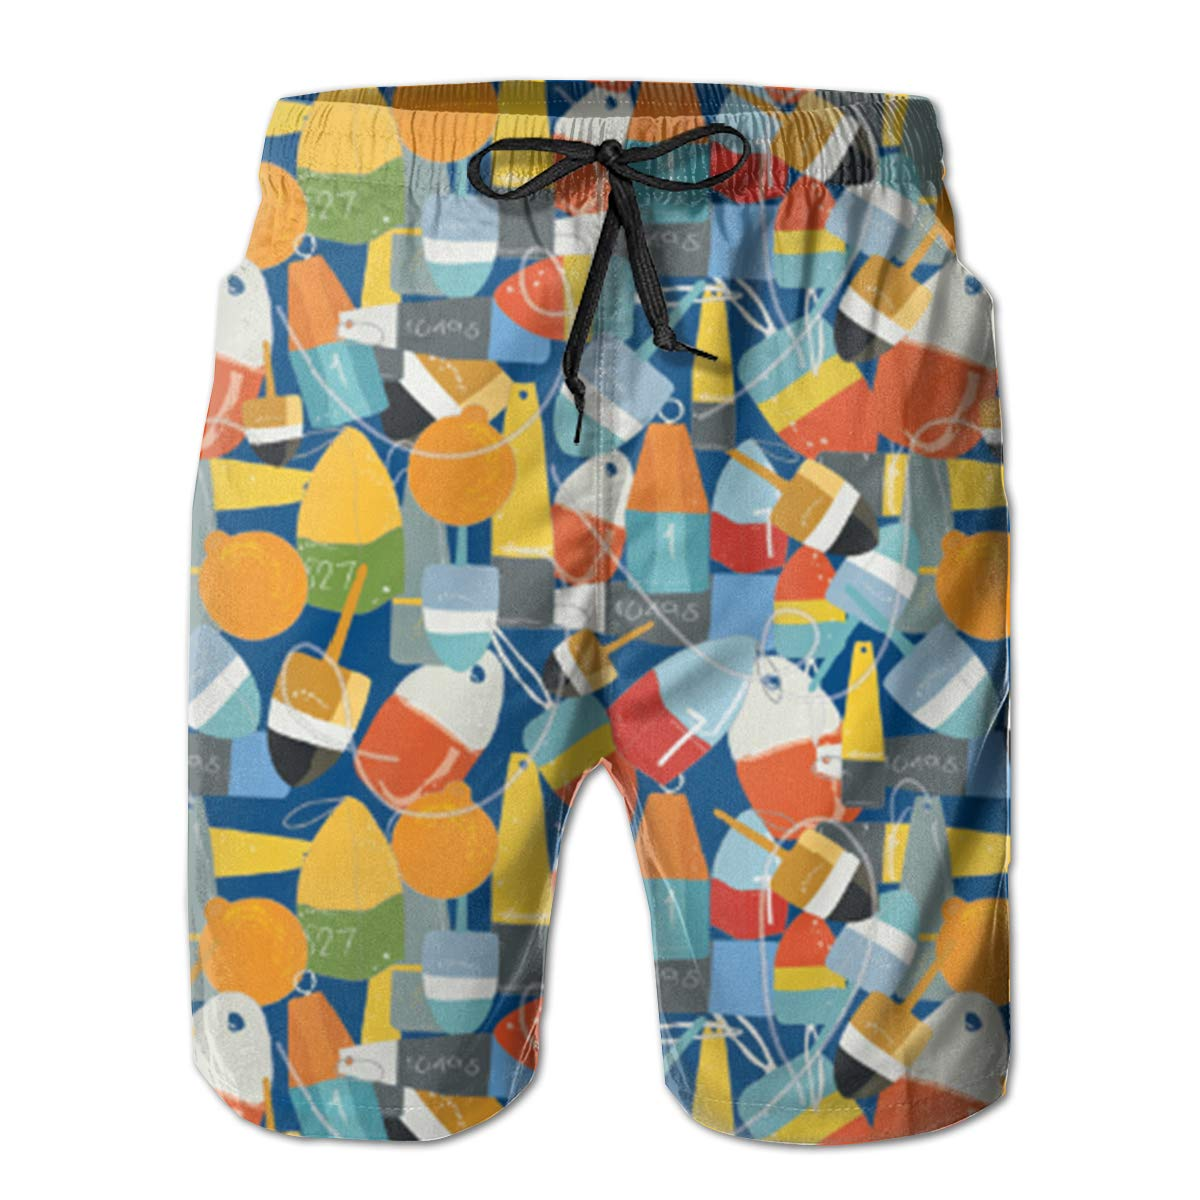 FASUWAVE Mens Swim Trunks Buoy Nautical Quick Dry Beach Board Shorts with Mesh Lining